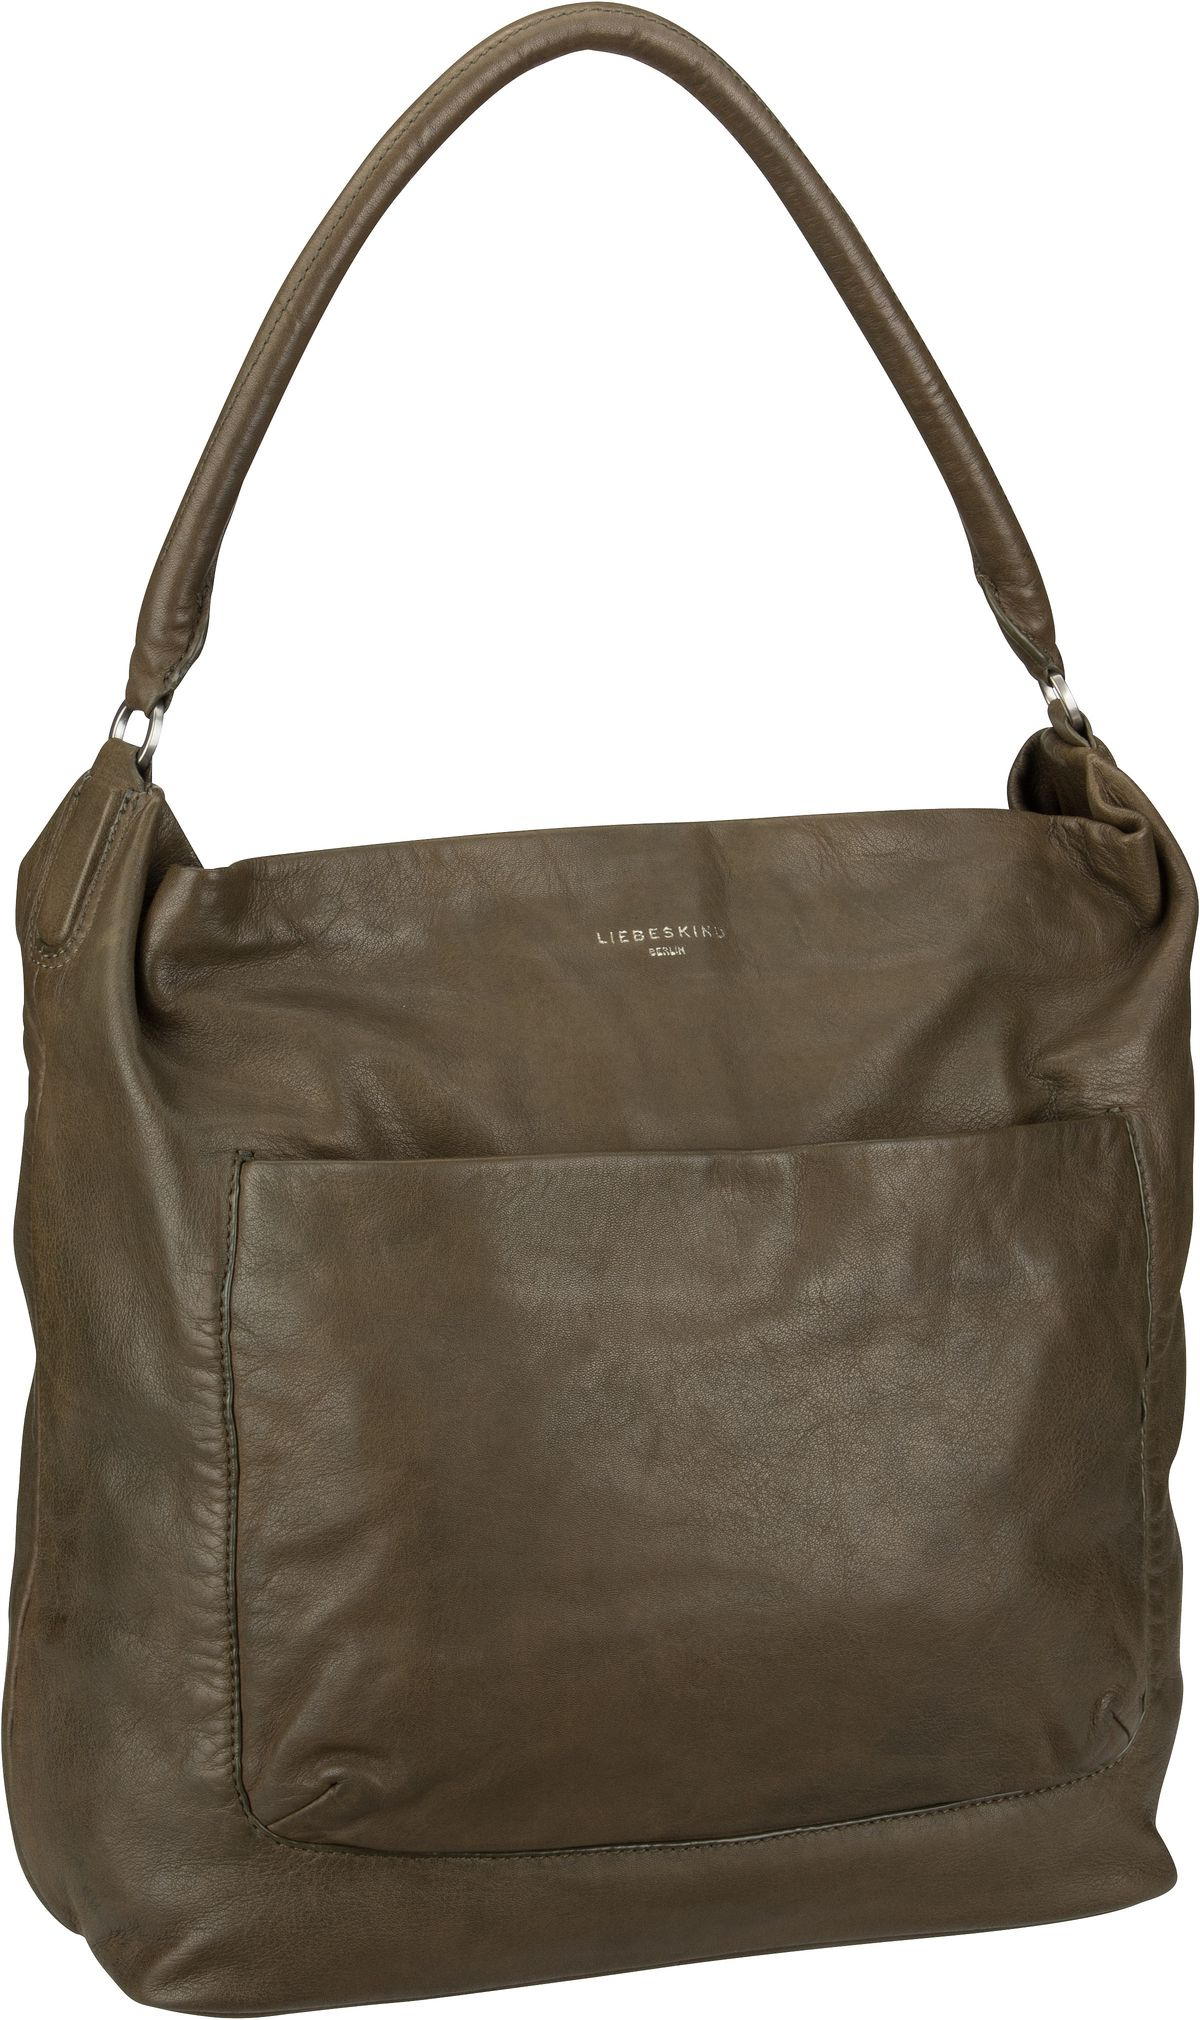 Berlin Handtasche Ever Hobo L Dark Olive Green